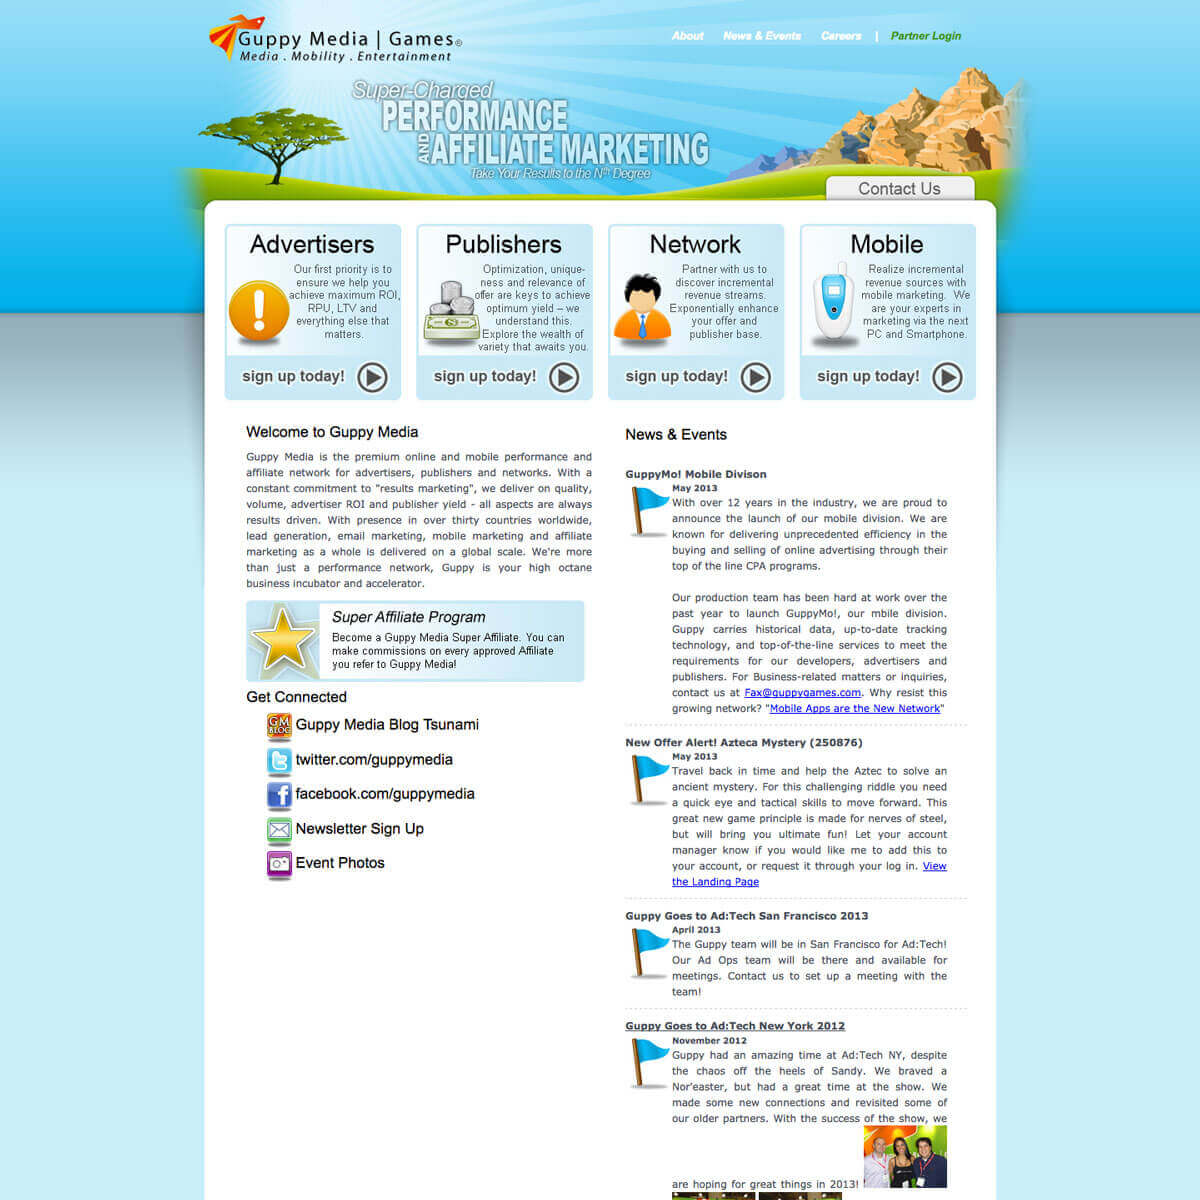 Previous Guppy Media website